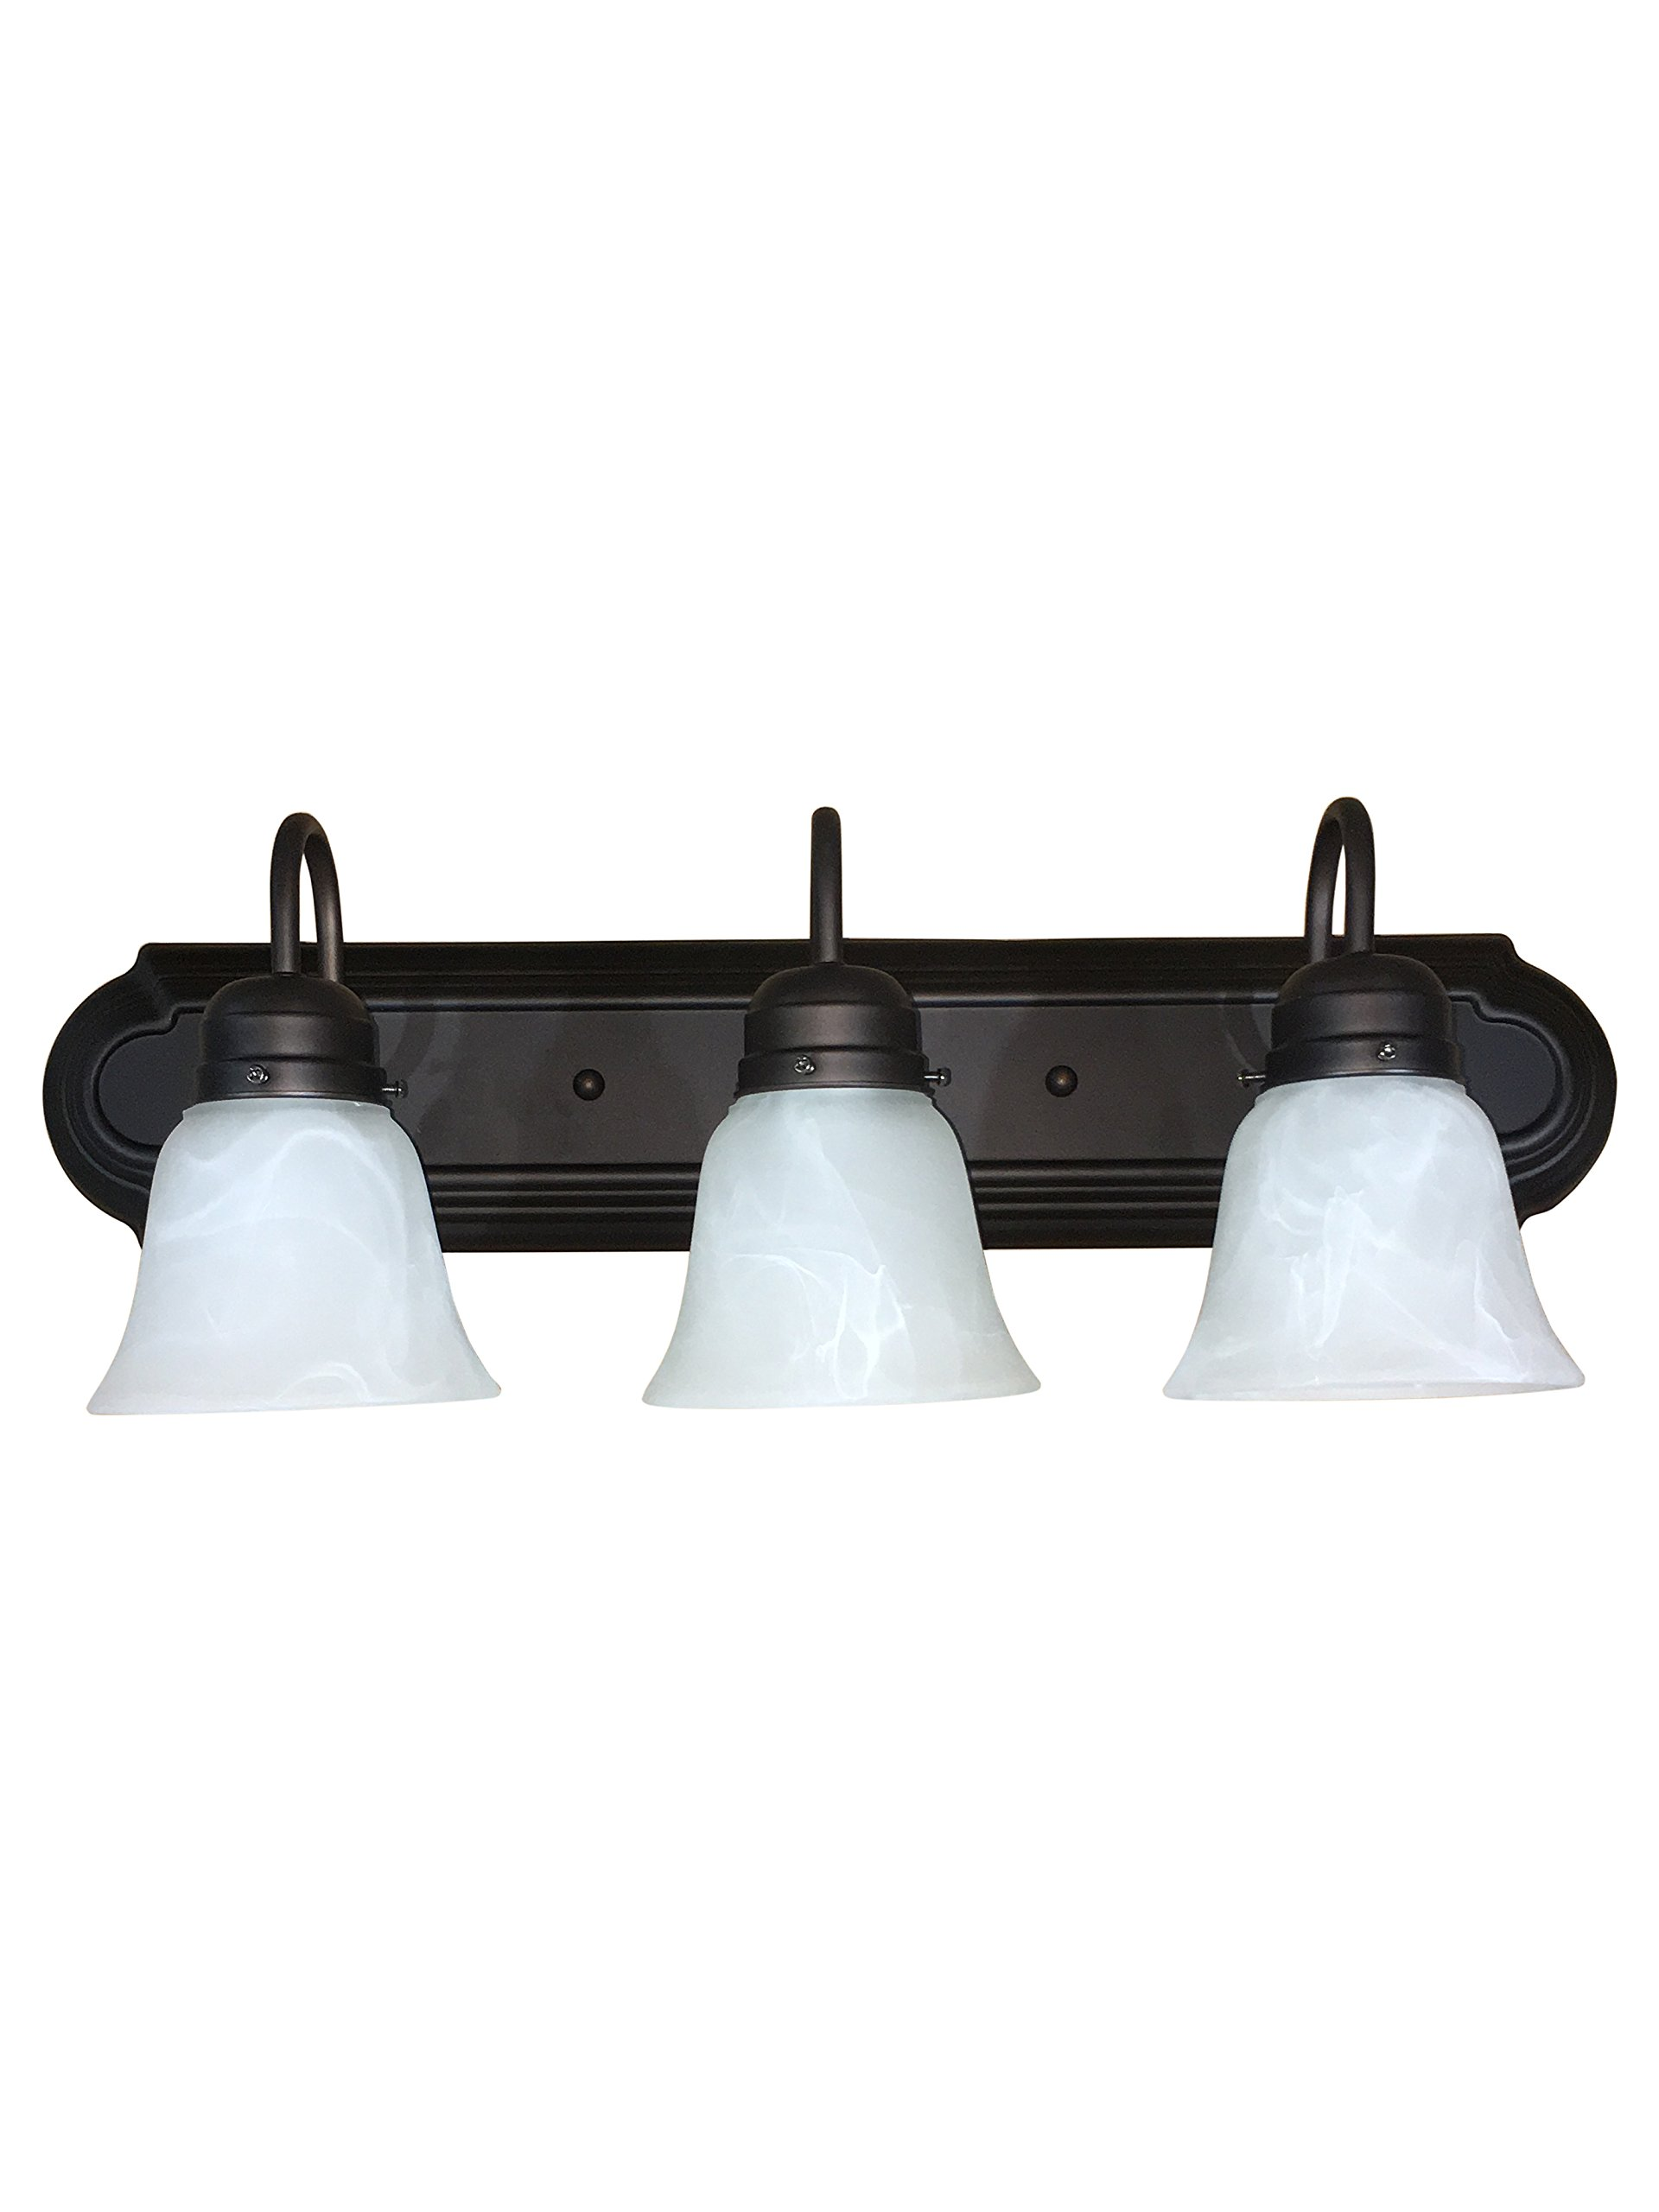 Y Decor L4993-3ORB Monica 1-Light Bathroom Vanity Light In Oil Rubbed Bronze